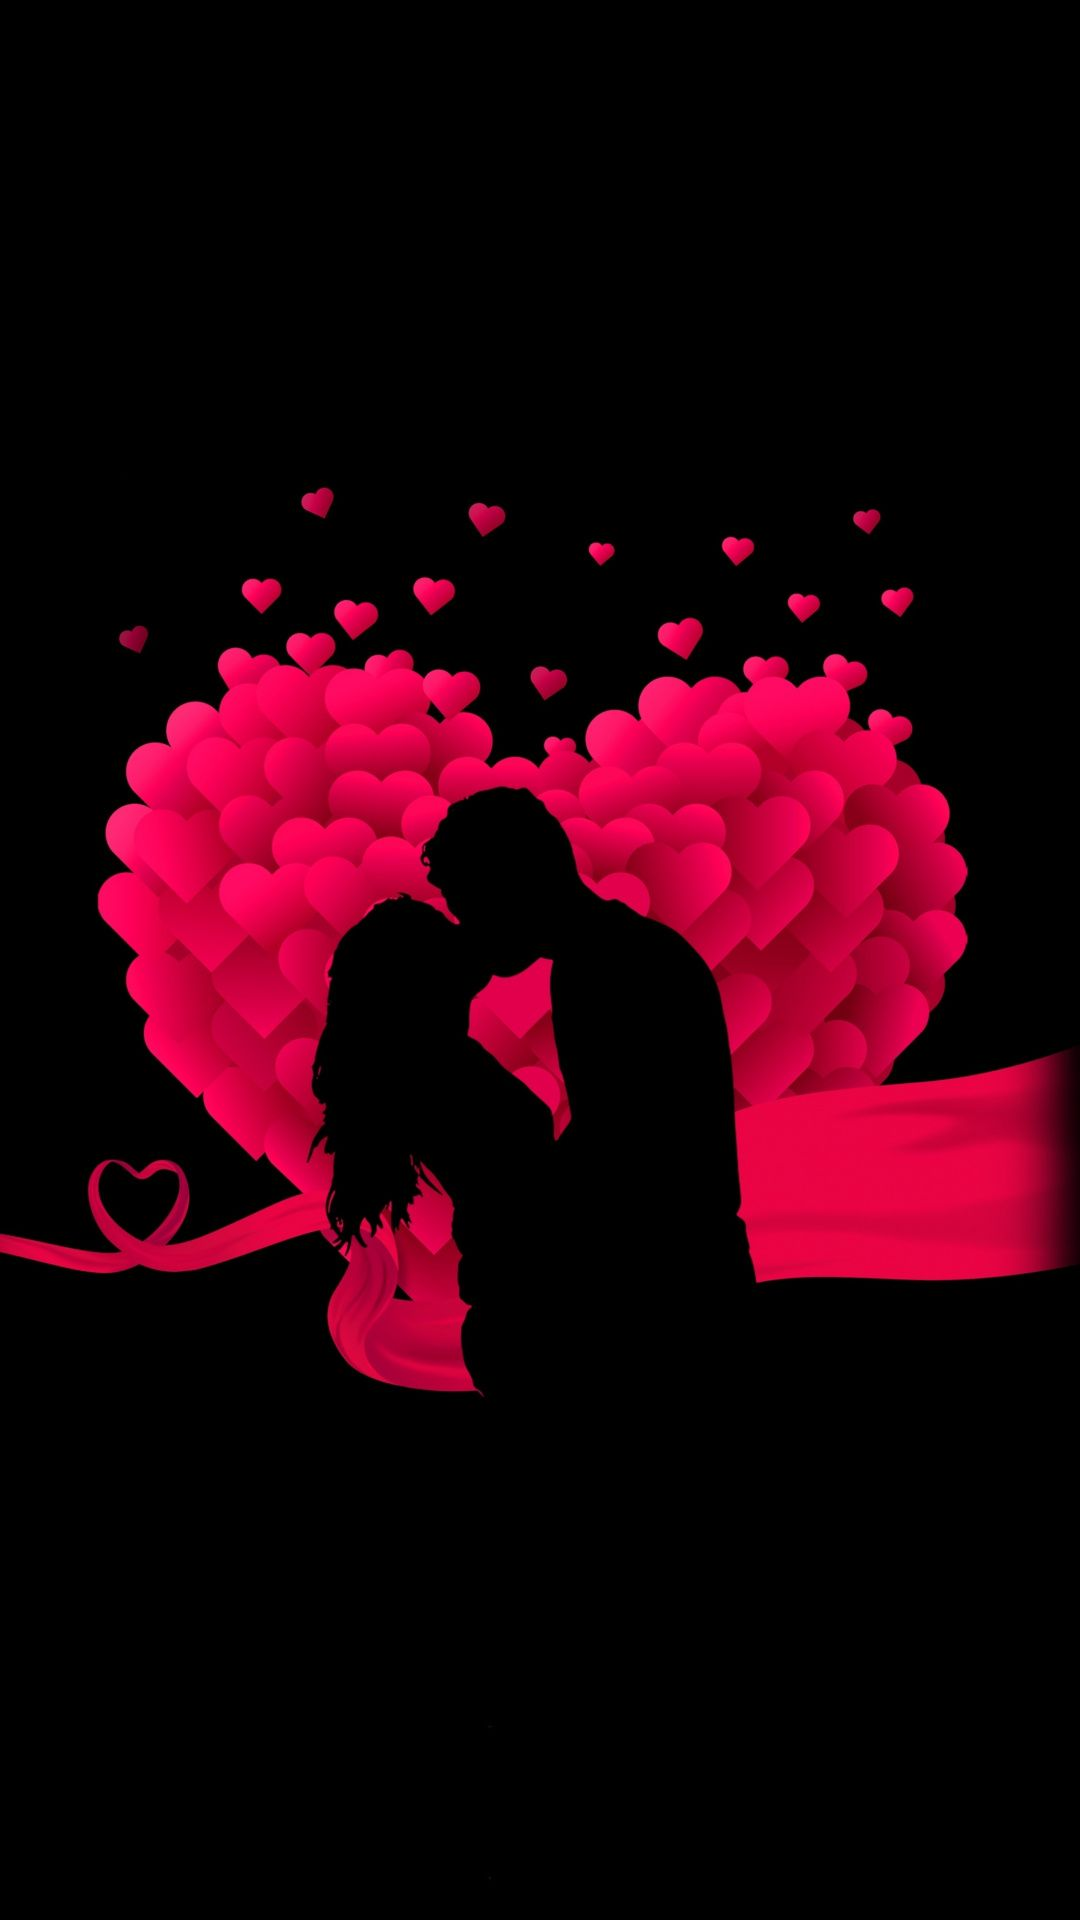 Couple Heart Love Minimal Kiss Silhouette Art 1080x1920